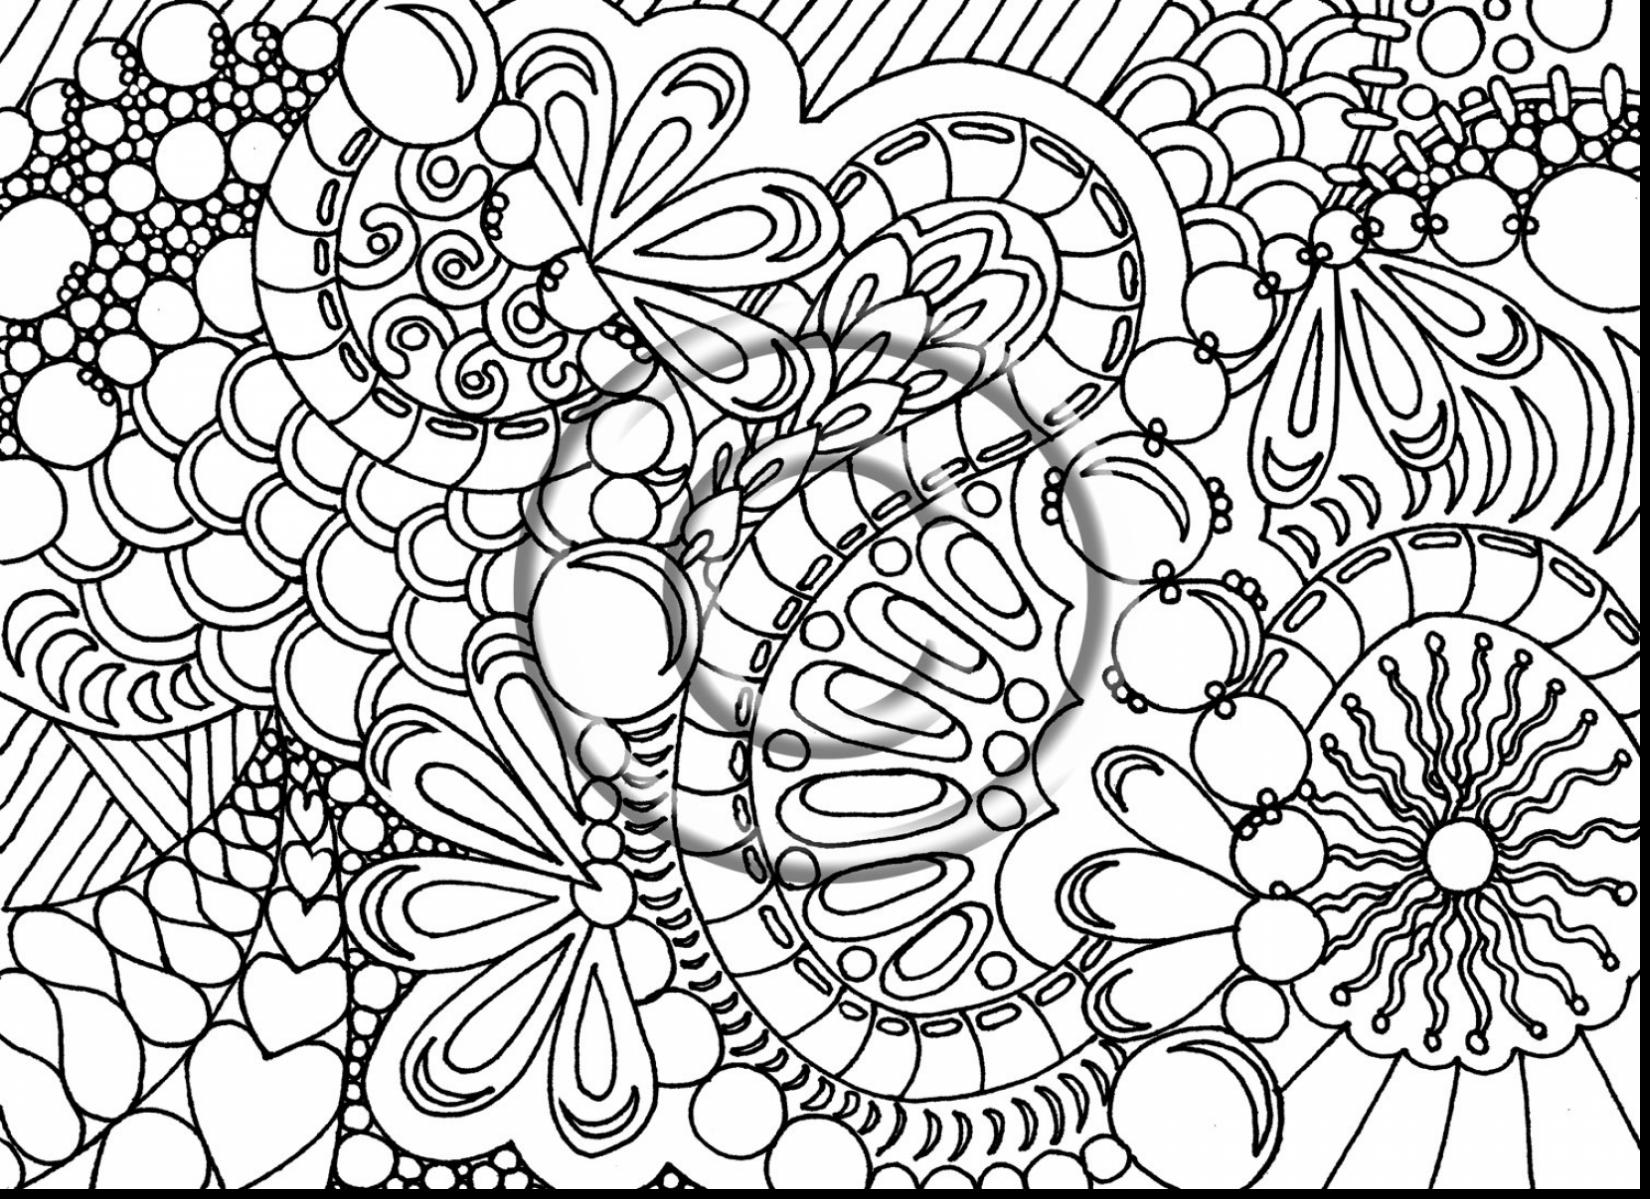 coloring book for adults coloring pages for adults shramkievua coloring for book adults